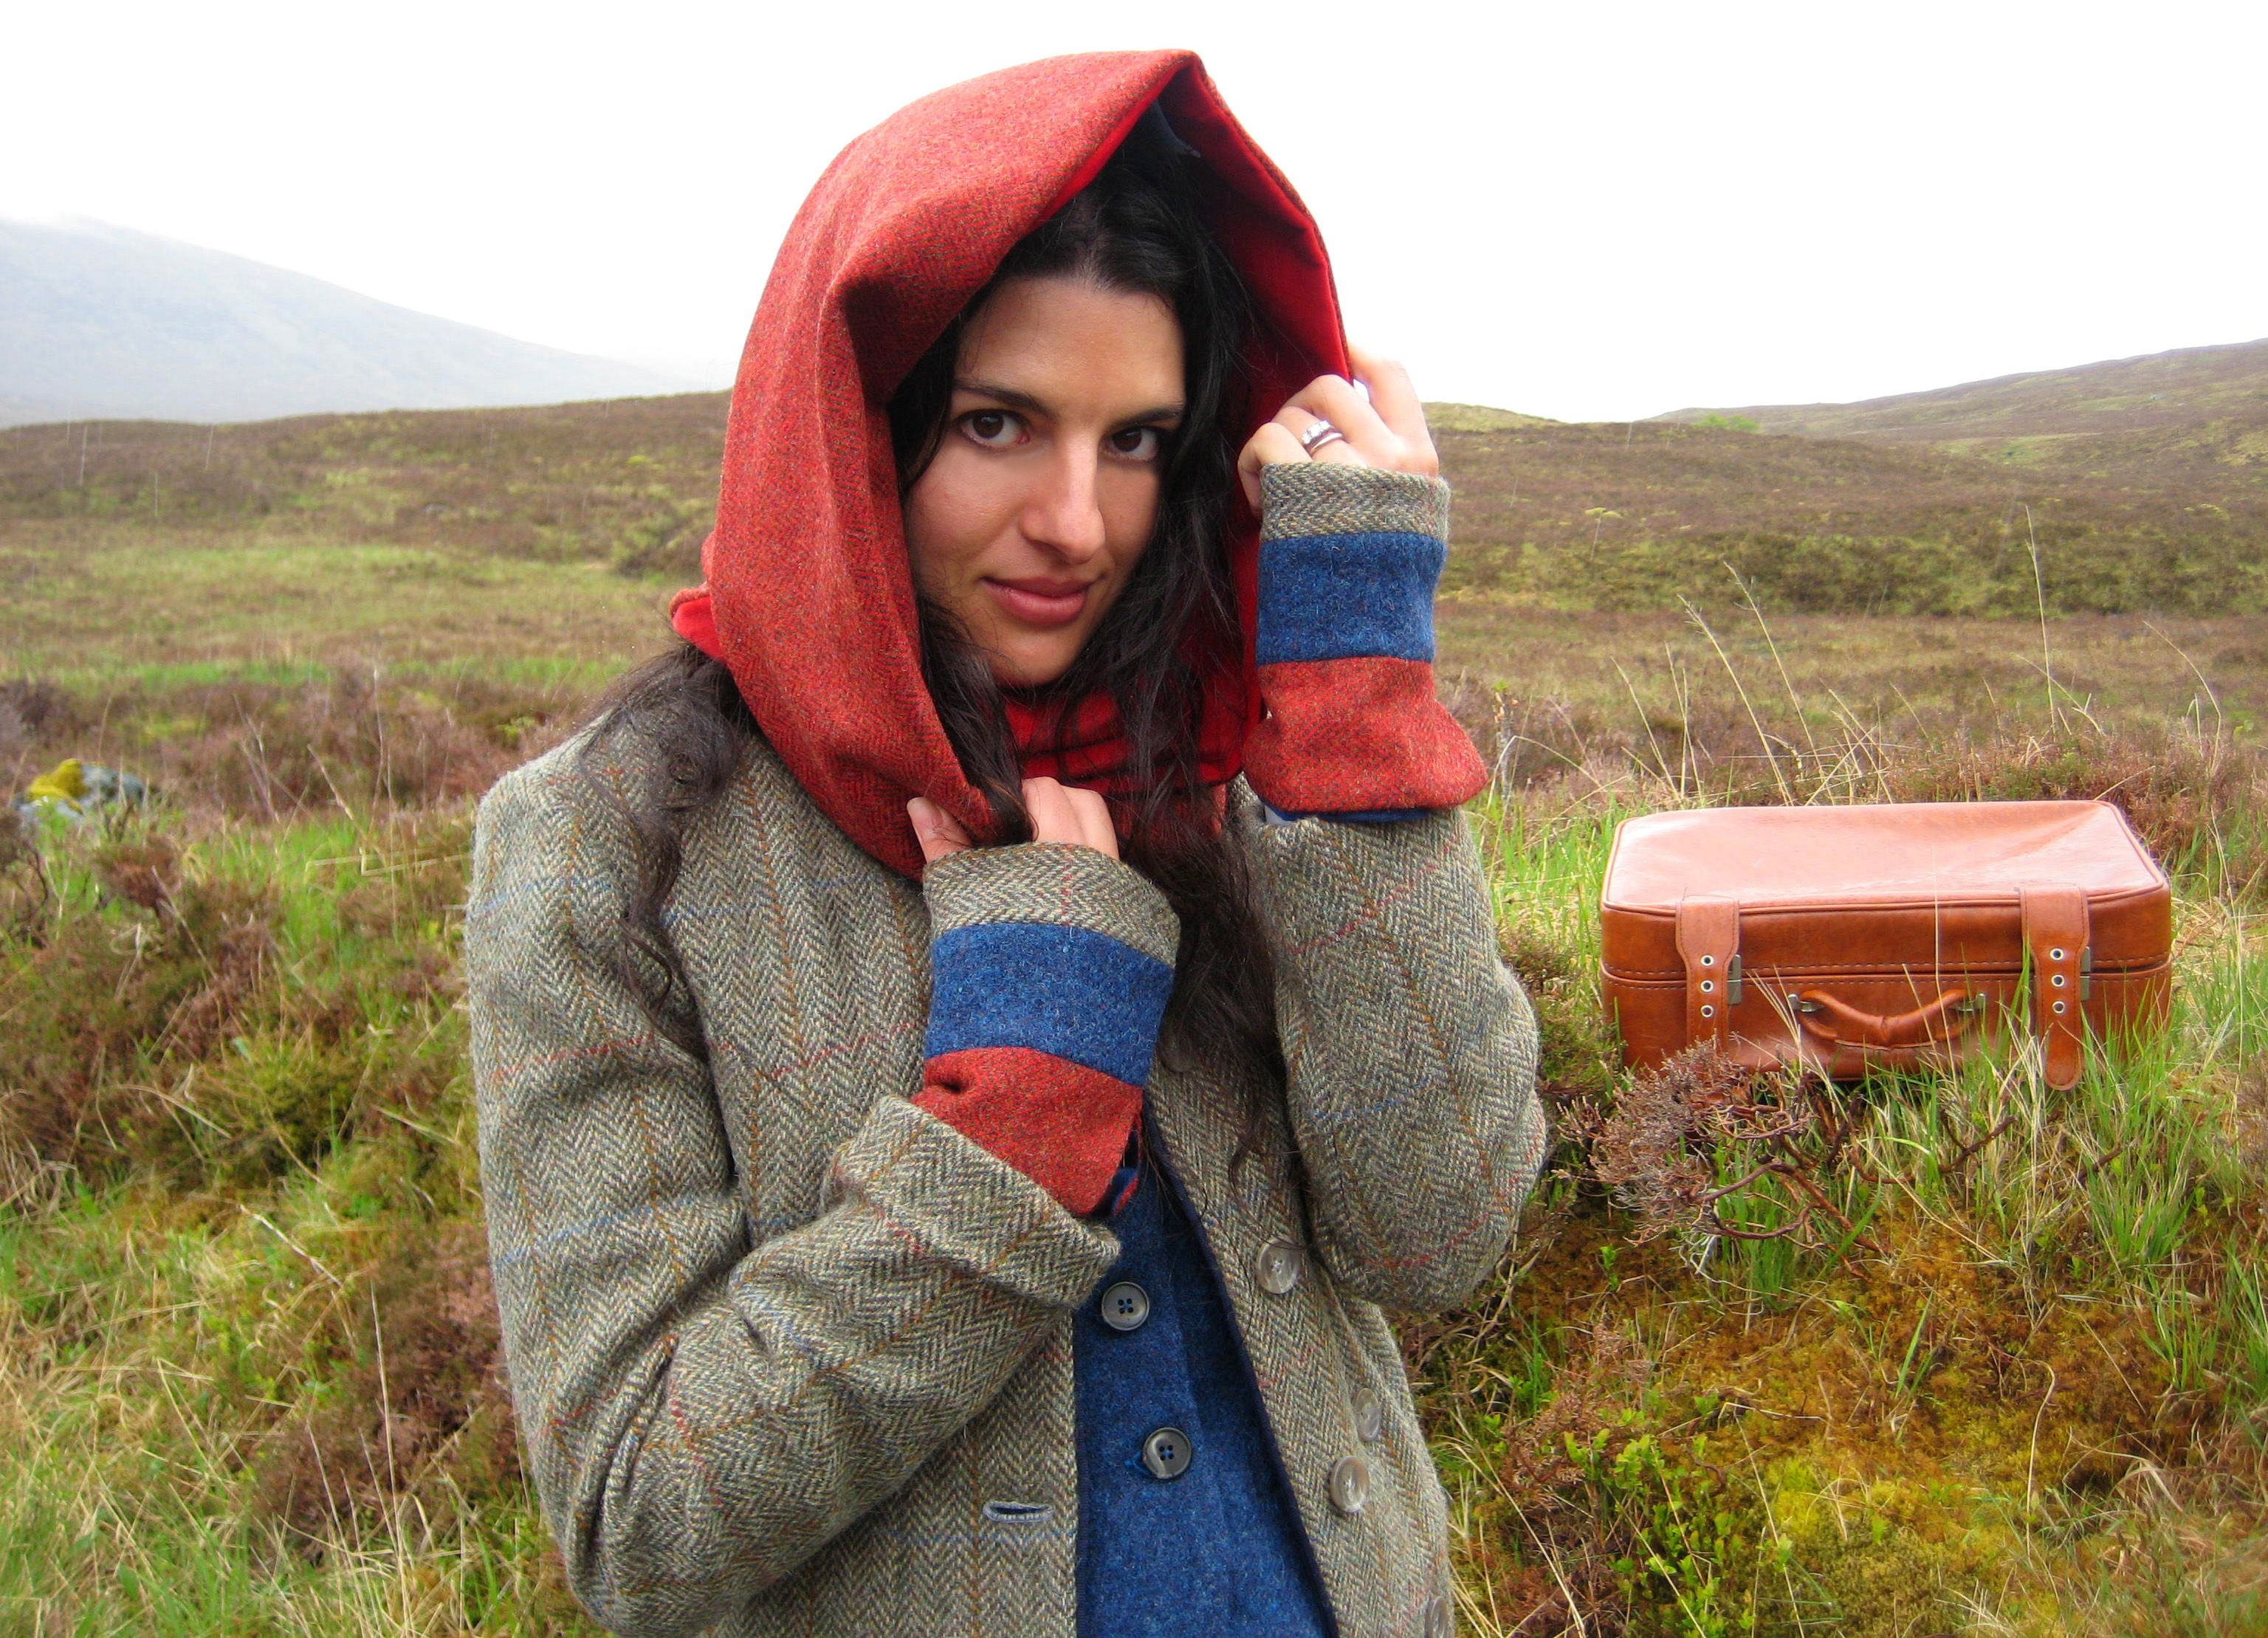 Snood and Mittens.  Tweed and velvet lined. Handmade in the Scottish Highlands. www.lornagillies.com Atmospheric, haunting, dreamer inspiration. Outlander. Scotland. Highlands. Glencoe